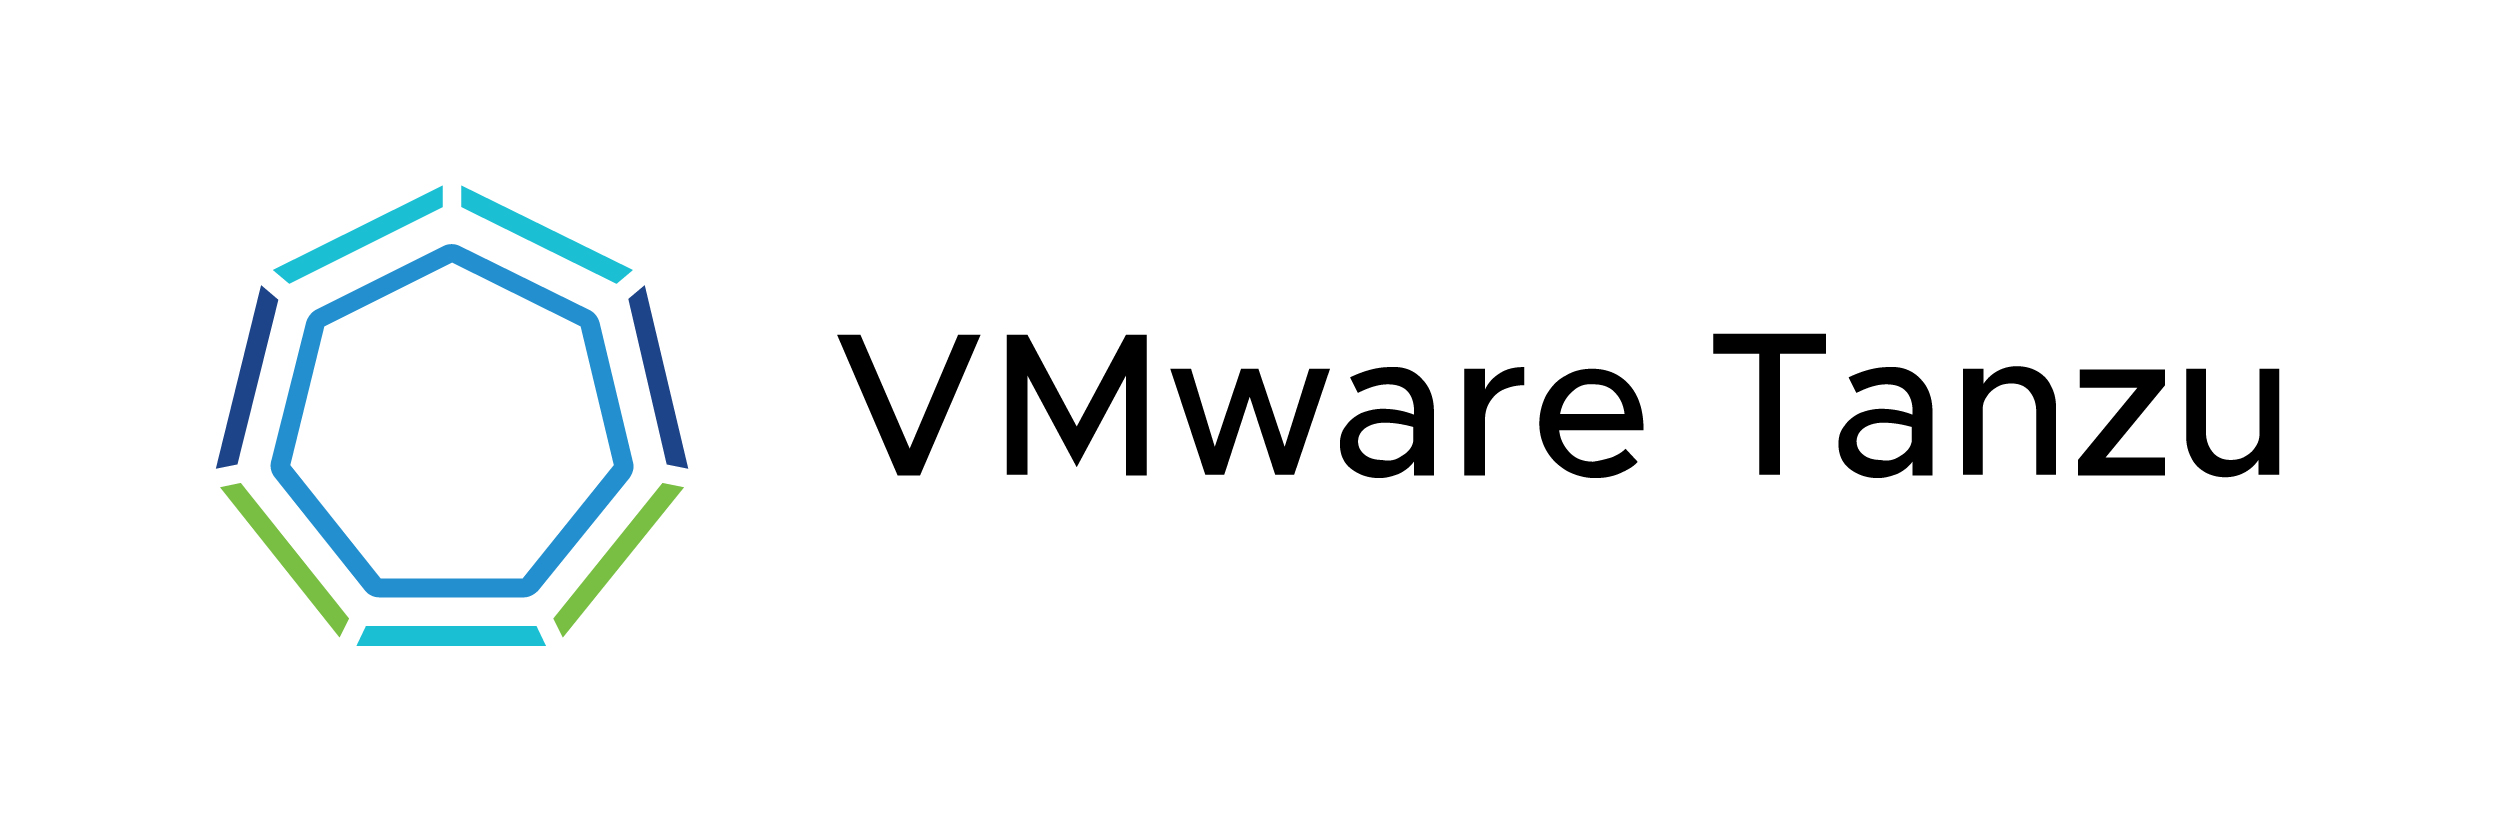 partner logos in white rectangles-VMware Tanzu